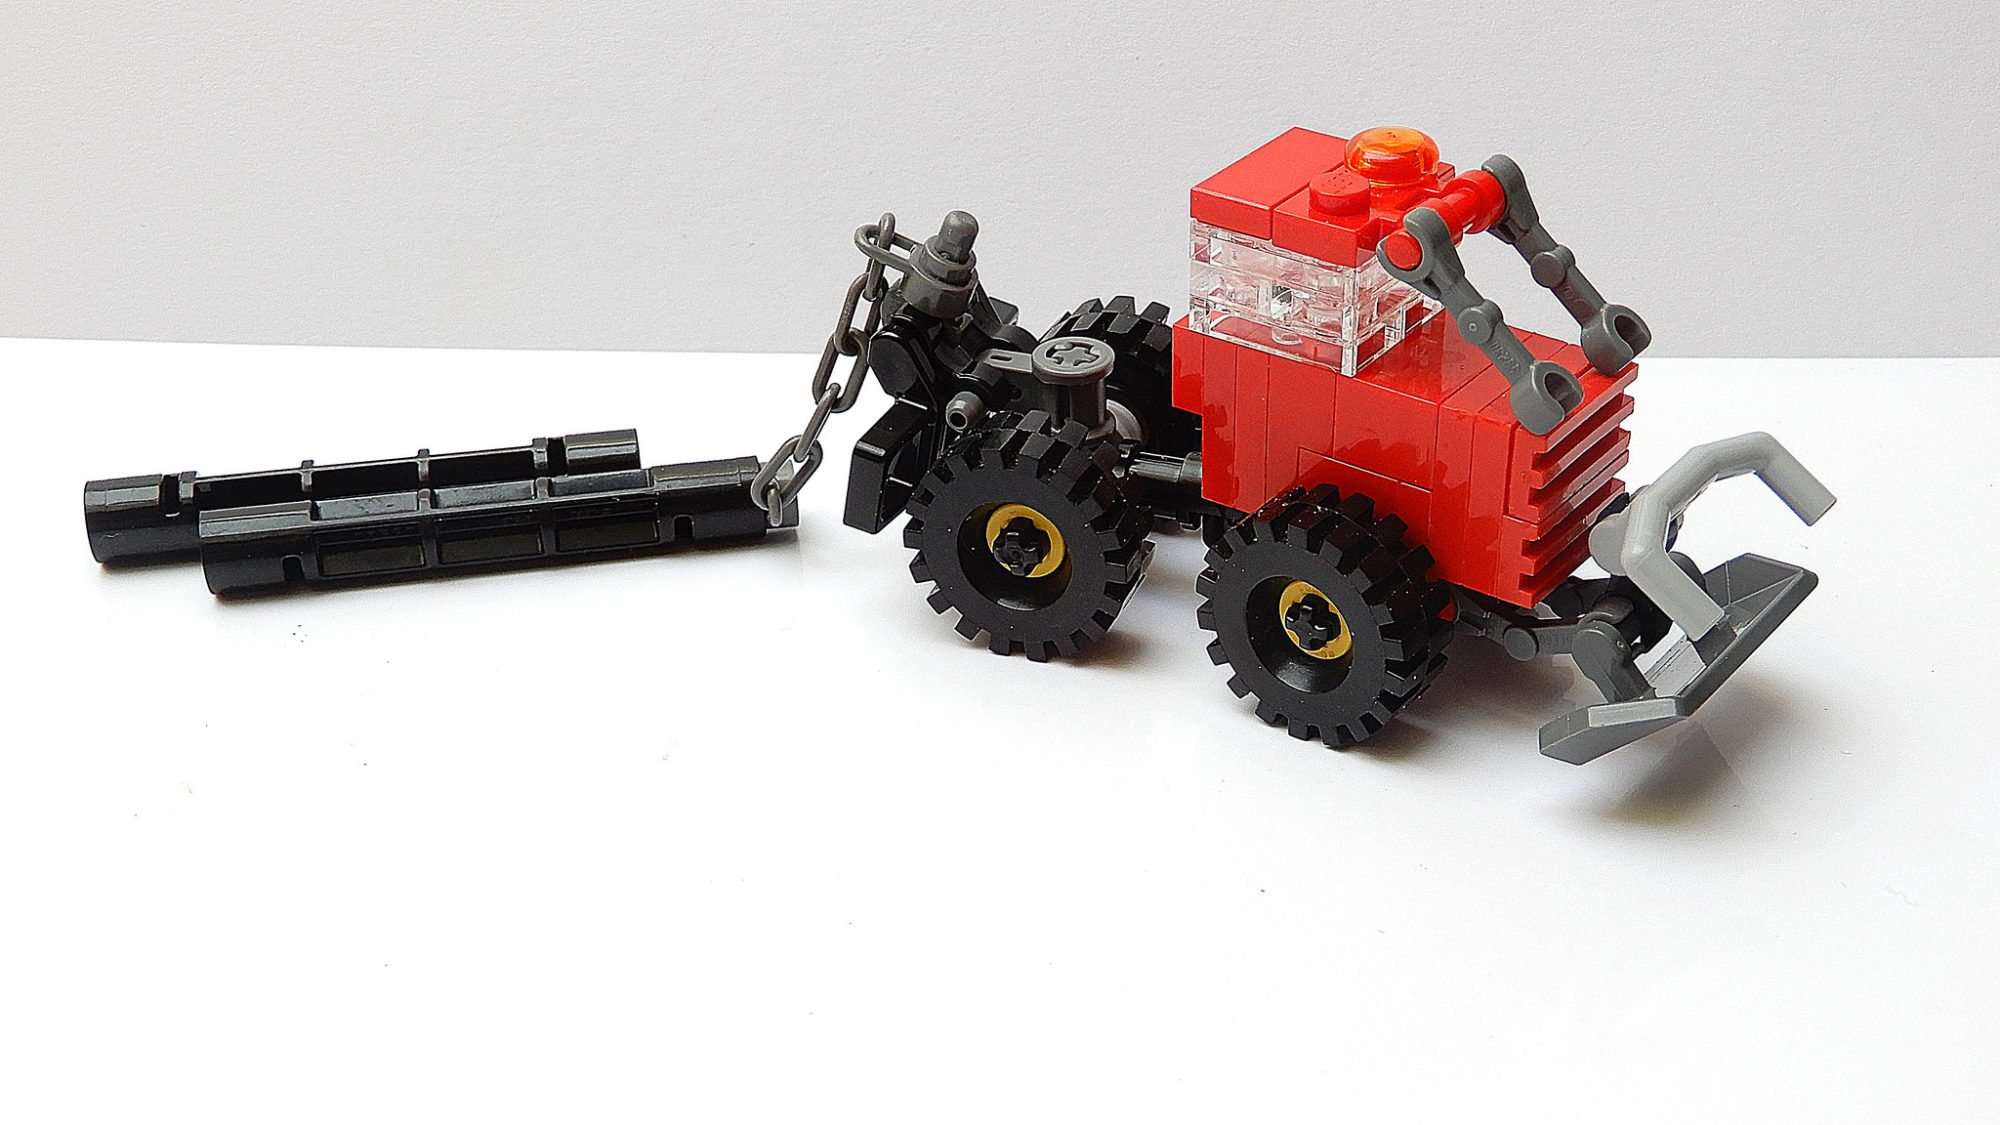 LEGO MOC Instructions to build this small Forest Cable Skidder